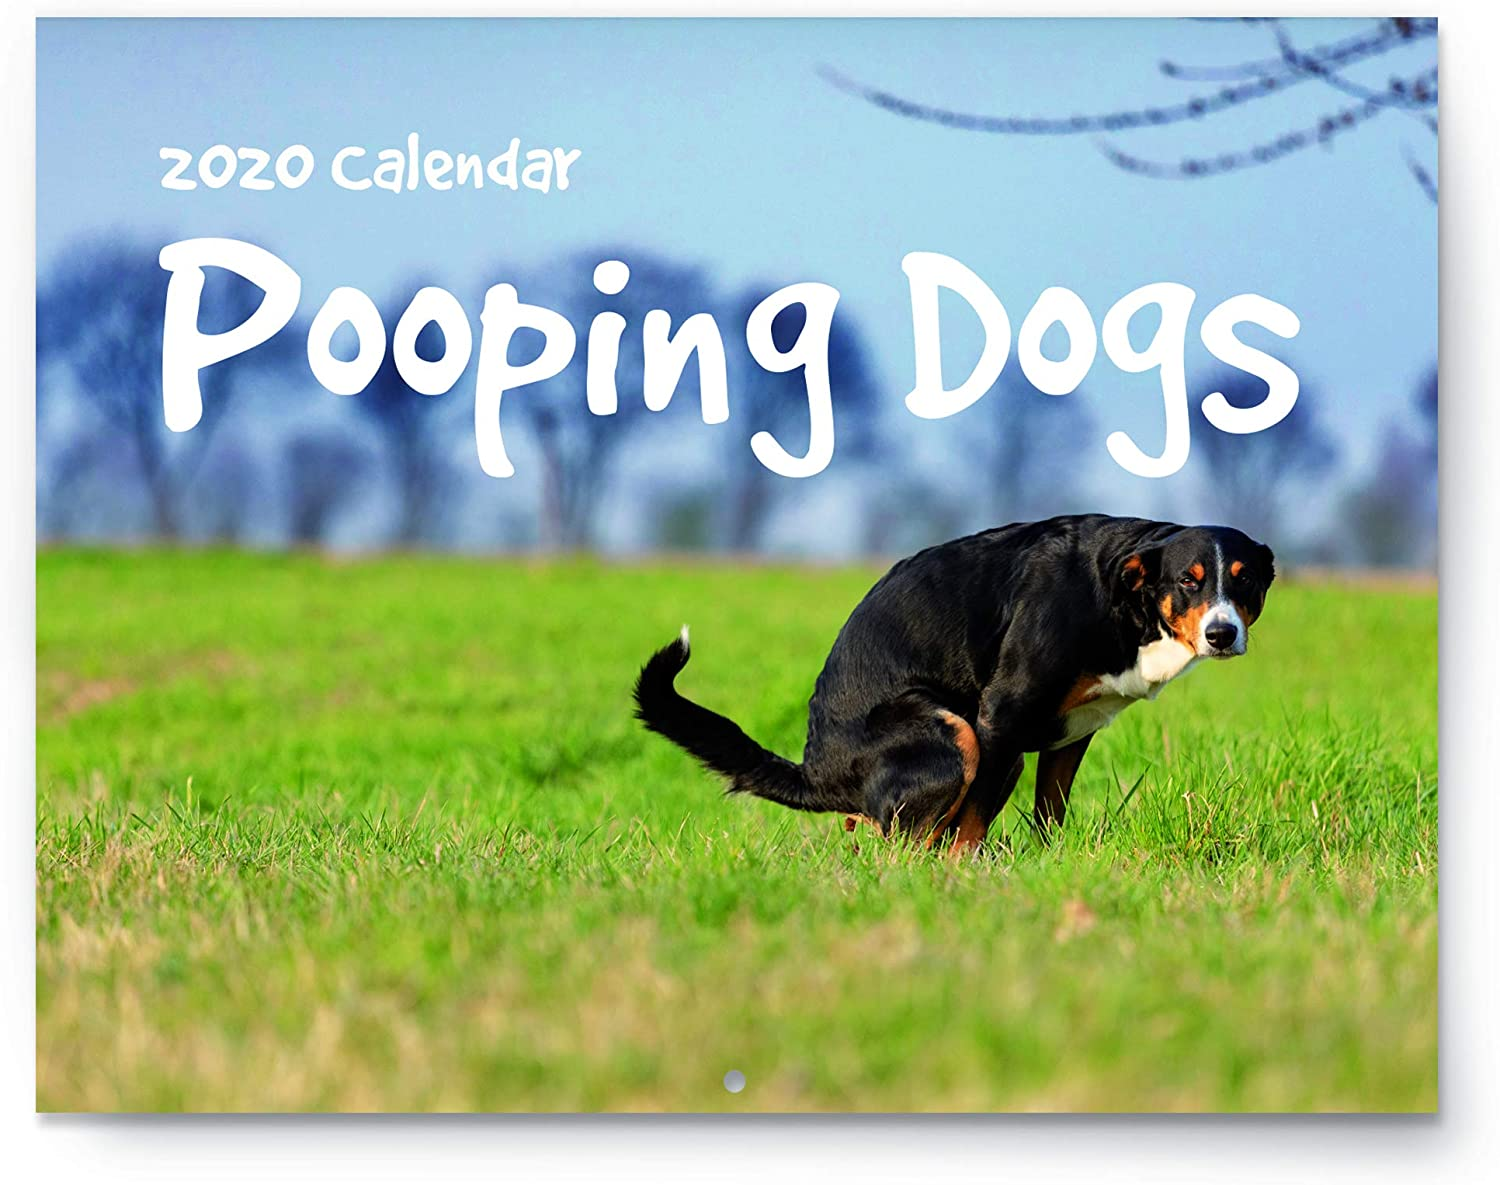 """Pooping Dogs Calendar - 2020 Wall Calendar - Large 11"""" x 17"""" When Open - Funny Gag Gift for Dog Lovers - Joke Present with Beautiful Photos of Dogs Pooping"""